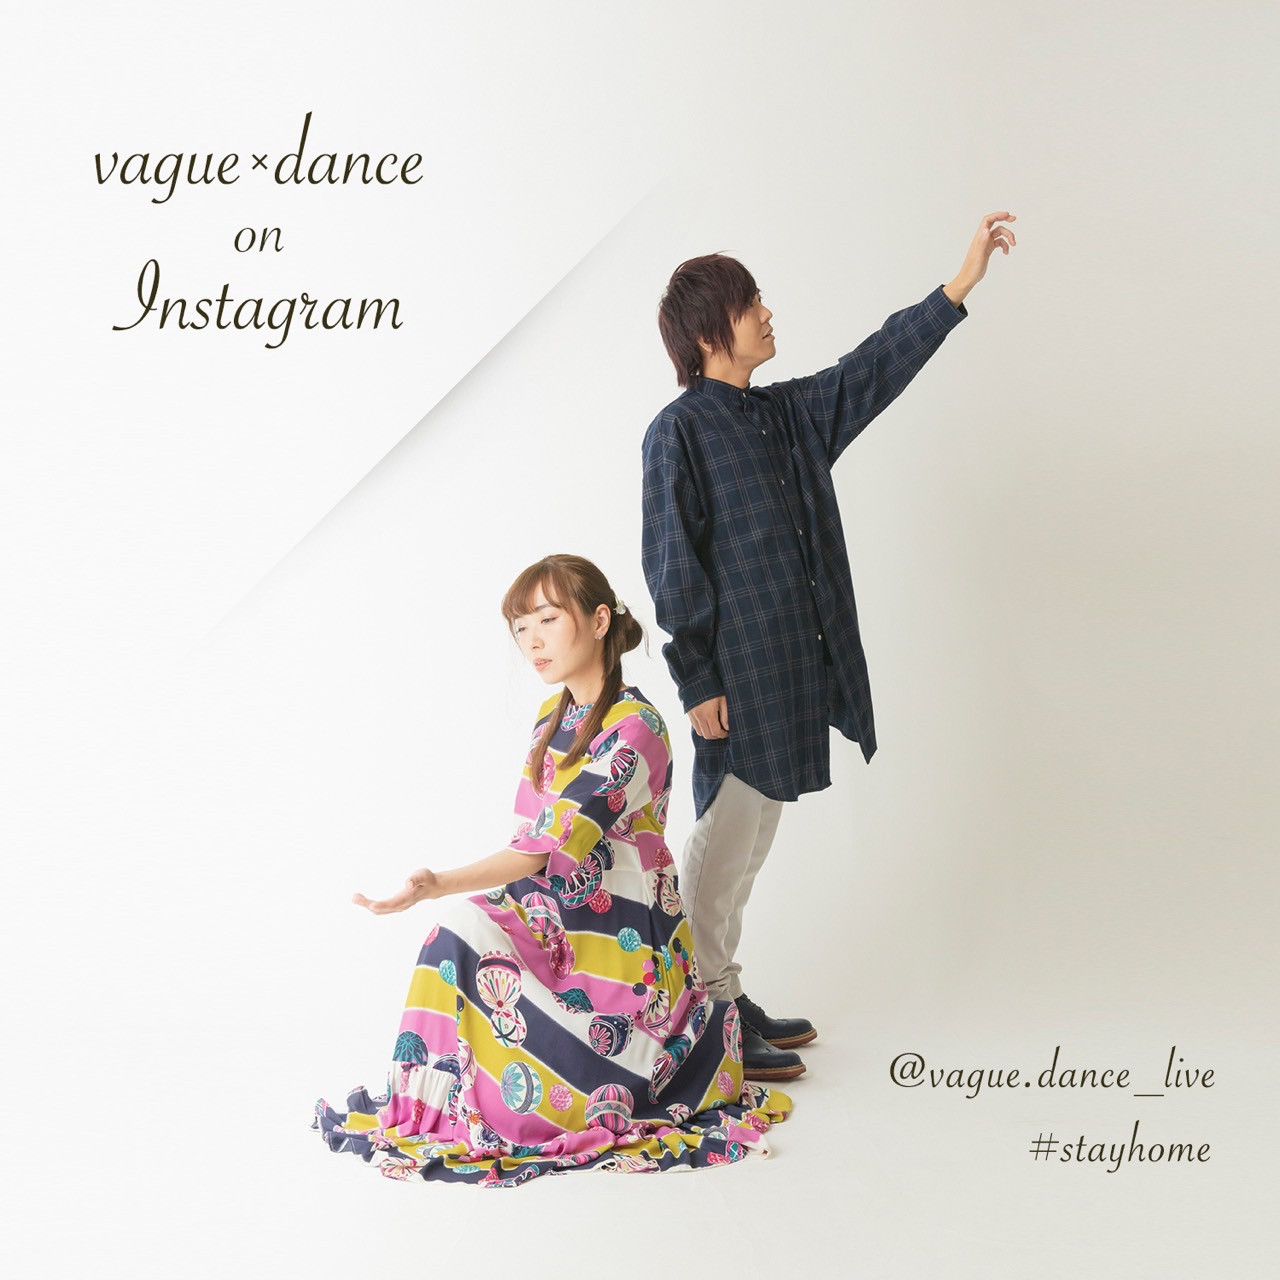 vague×dance on Instagram